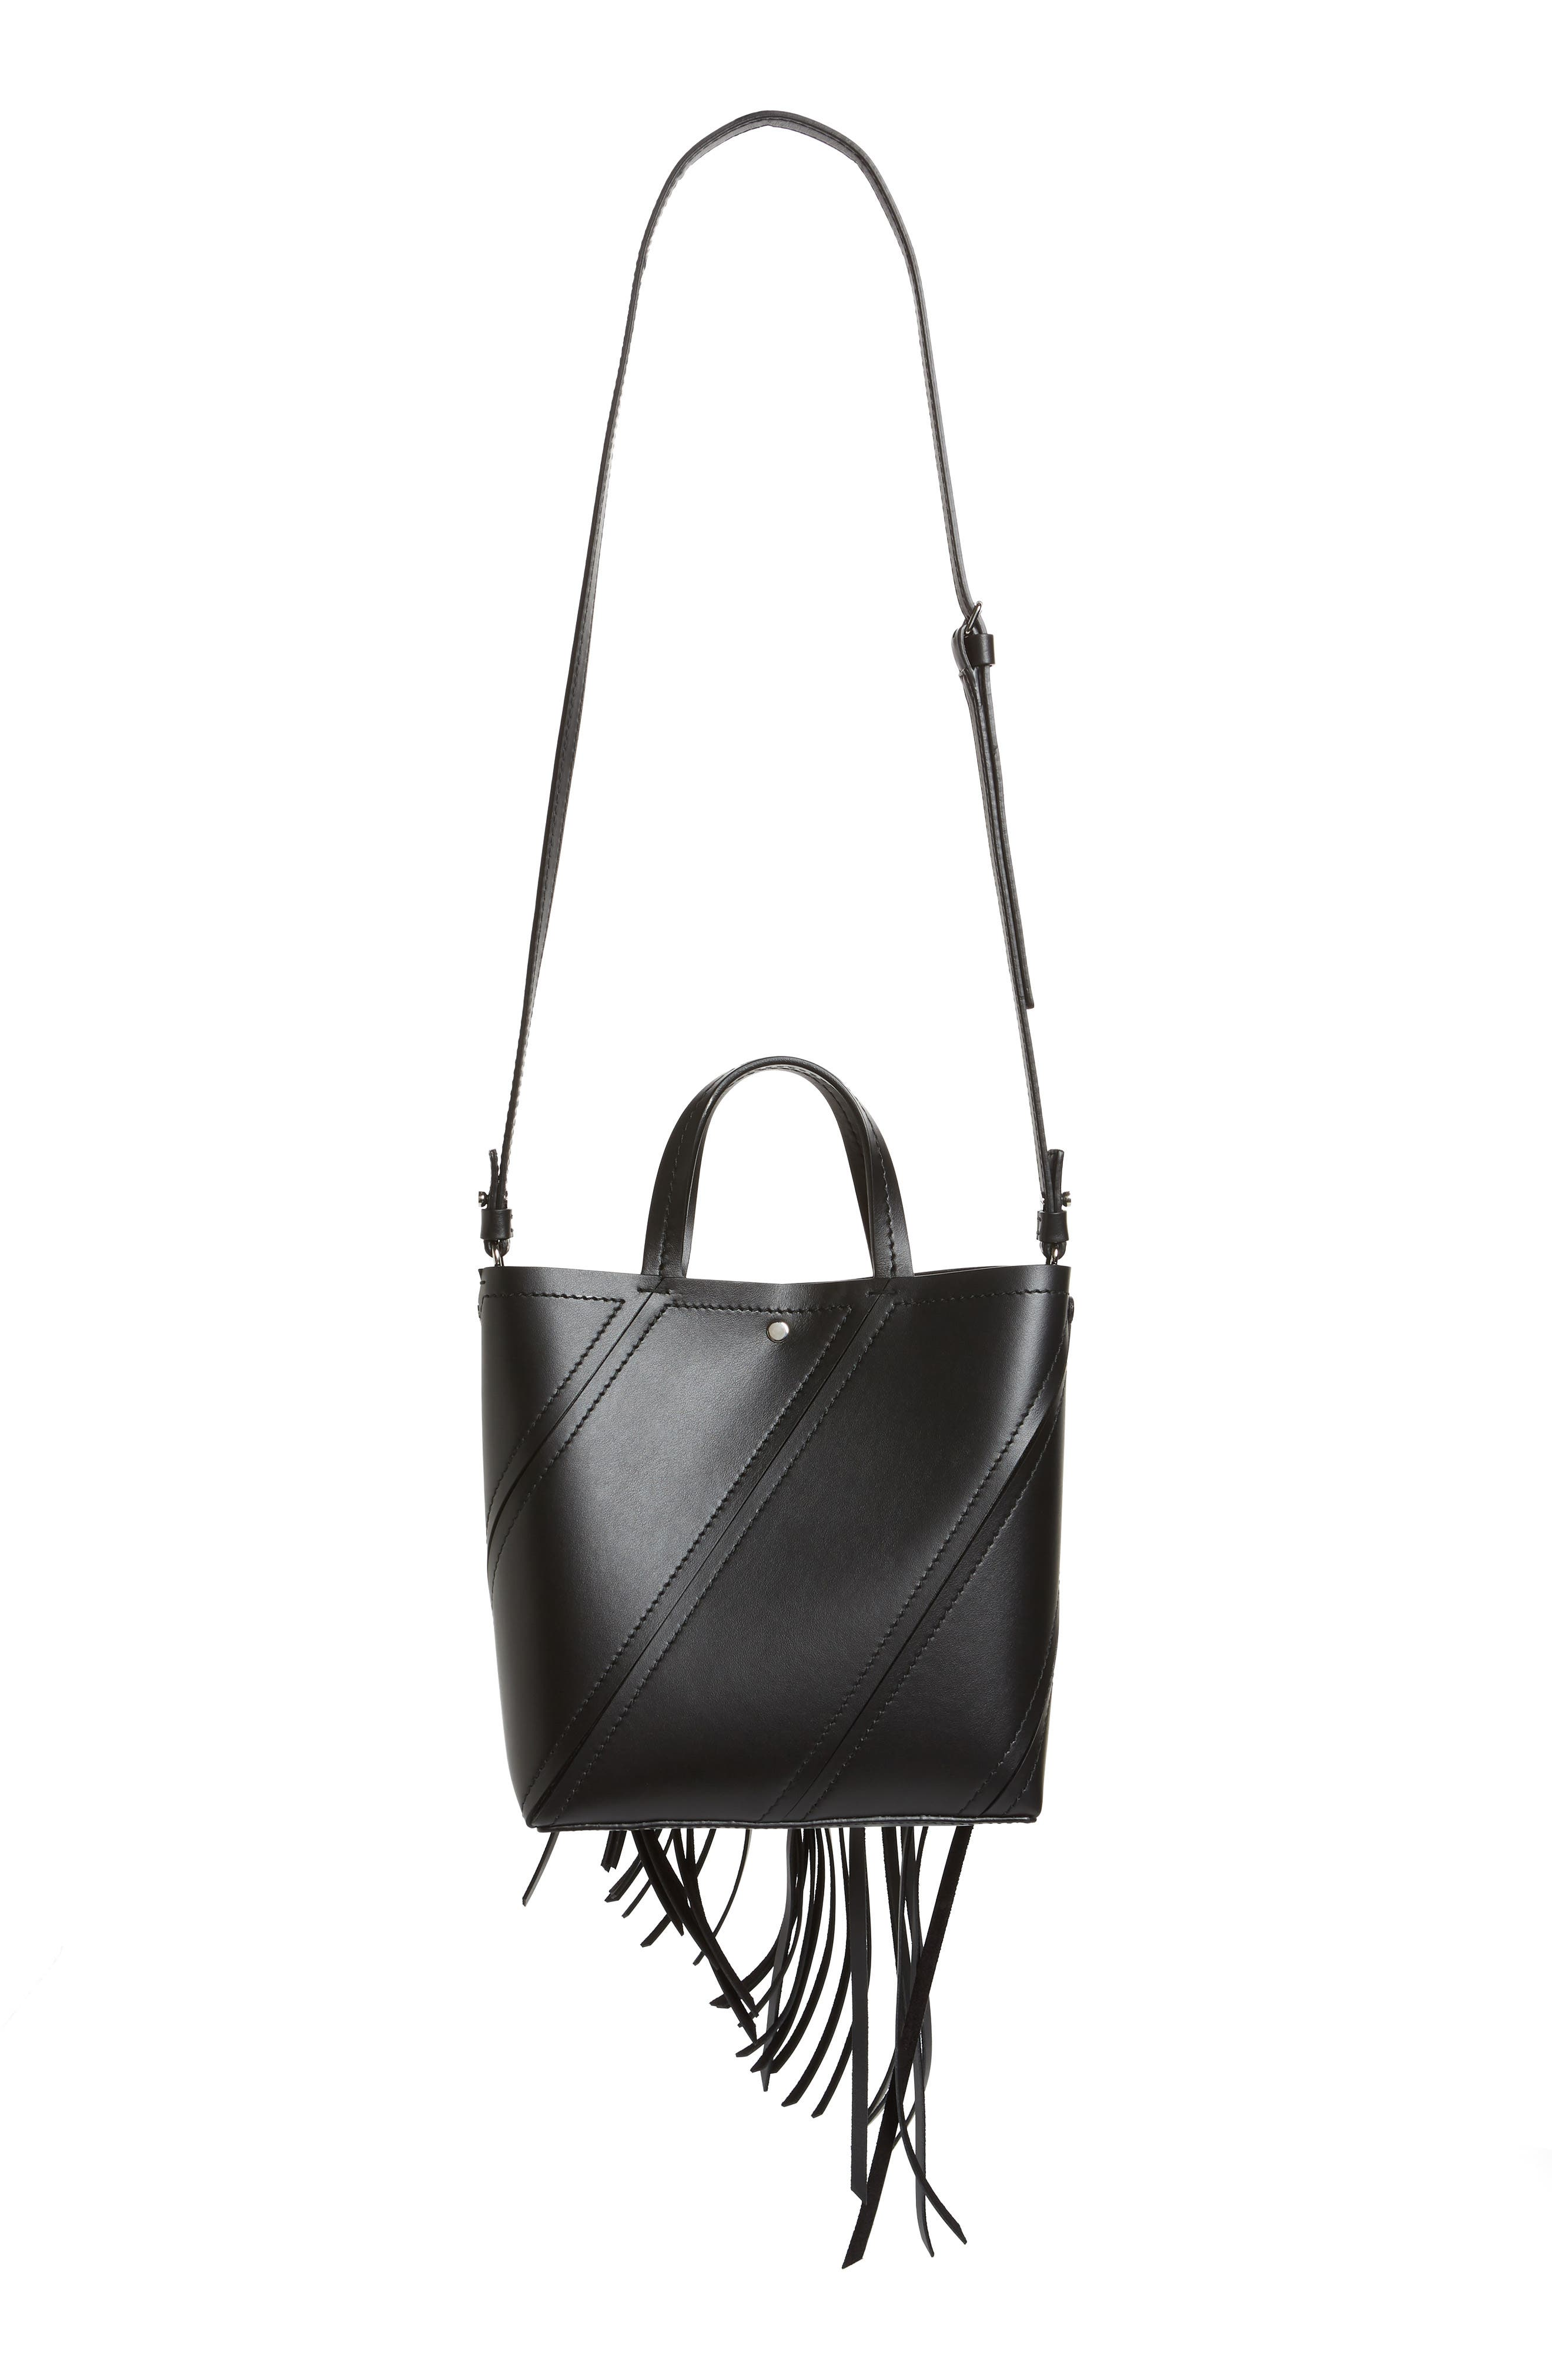 PROENZA SCHOULER, Proenza Schoulder Small Hex Calfskin Leather Tote, Alternate thumbnail 4, color, BLACK/ BLACK